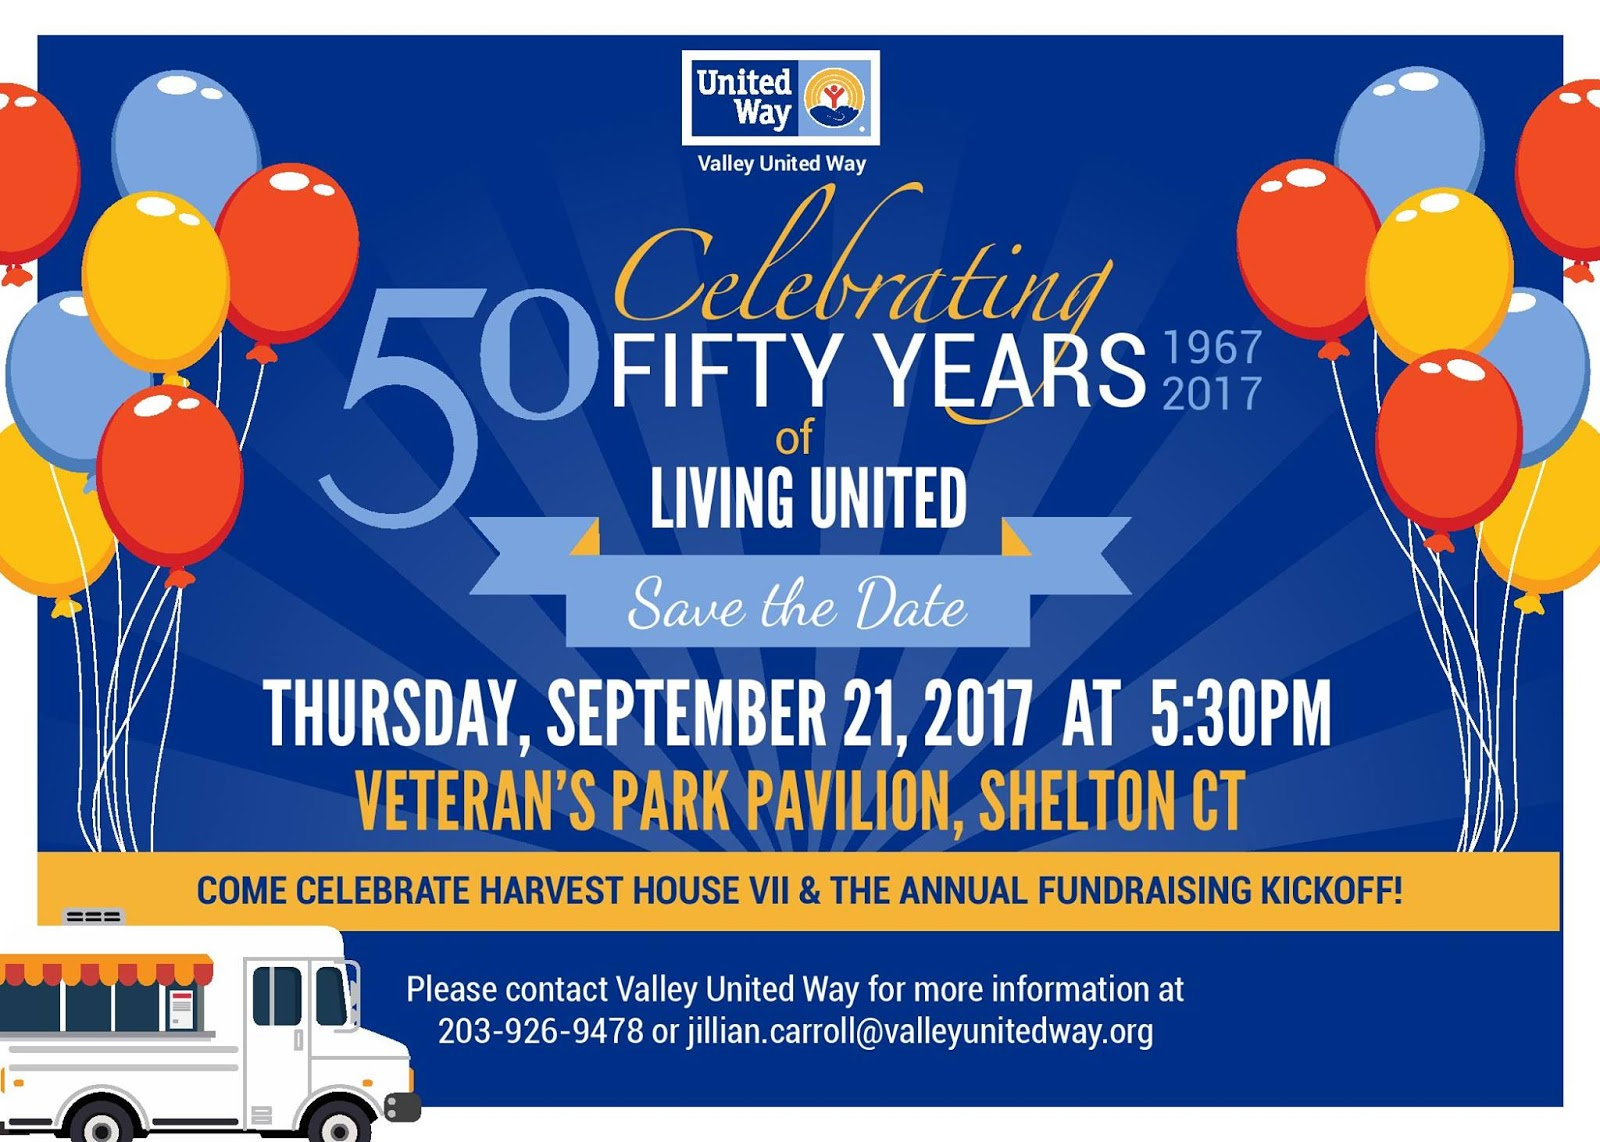 The Valley Voice Valley United Way To Mark 50th Anniversary